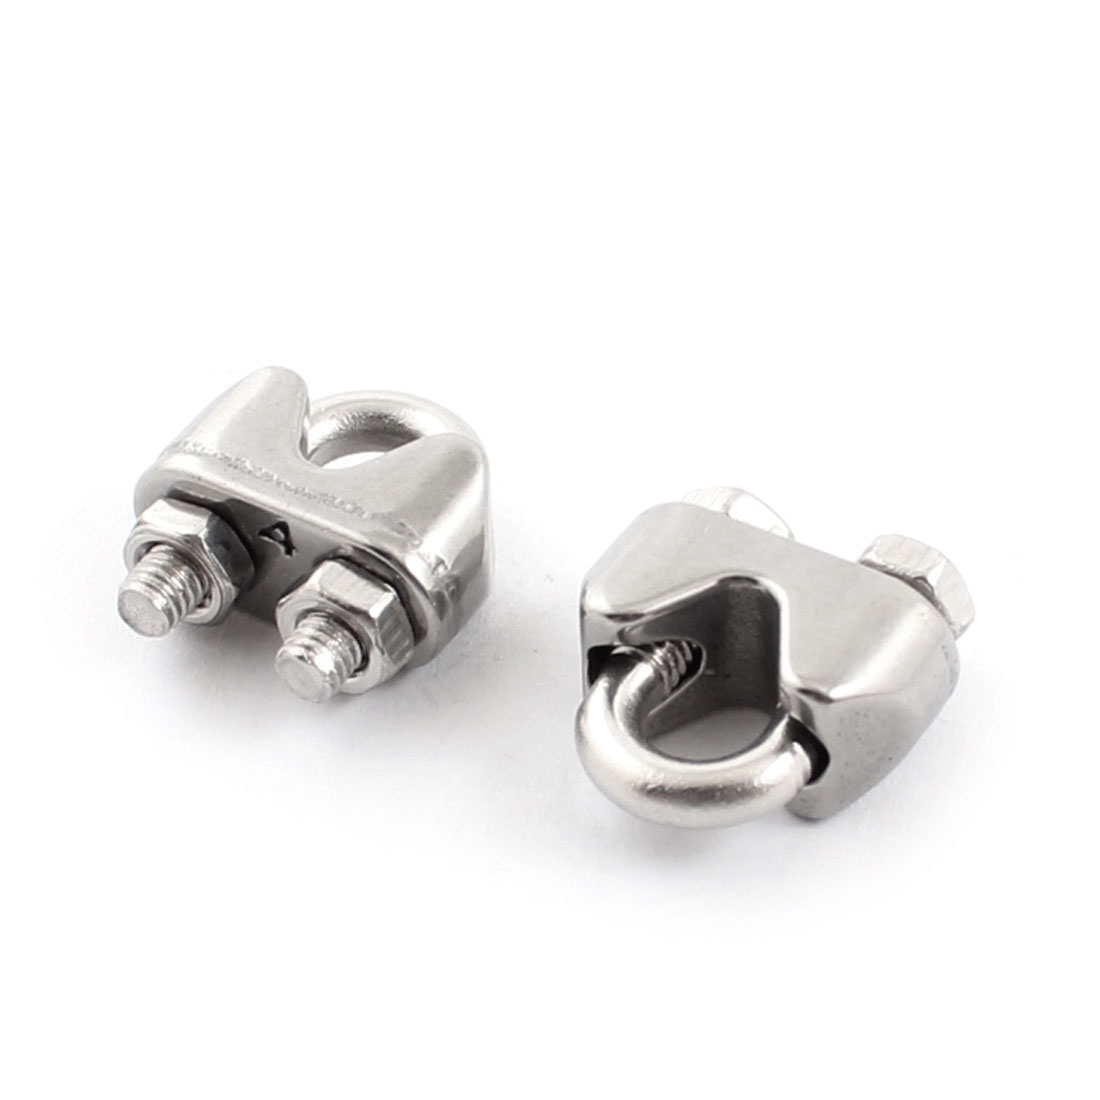 "2pcs Stainless Steel Cable Clip Saddle Clamp for 5/32"" 4mm Wire Ropes"